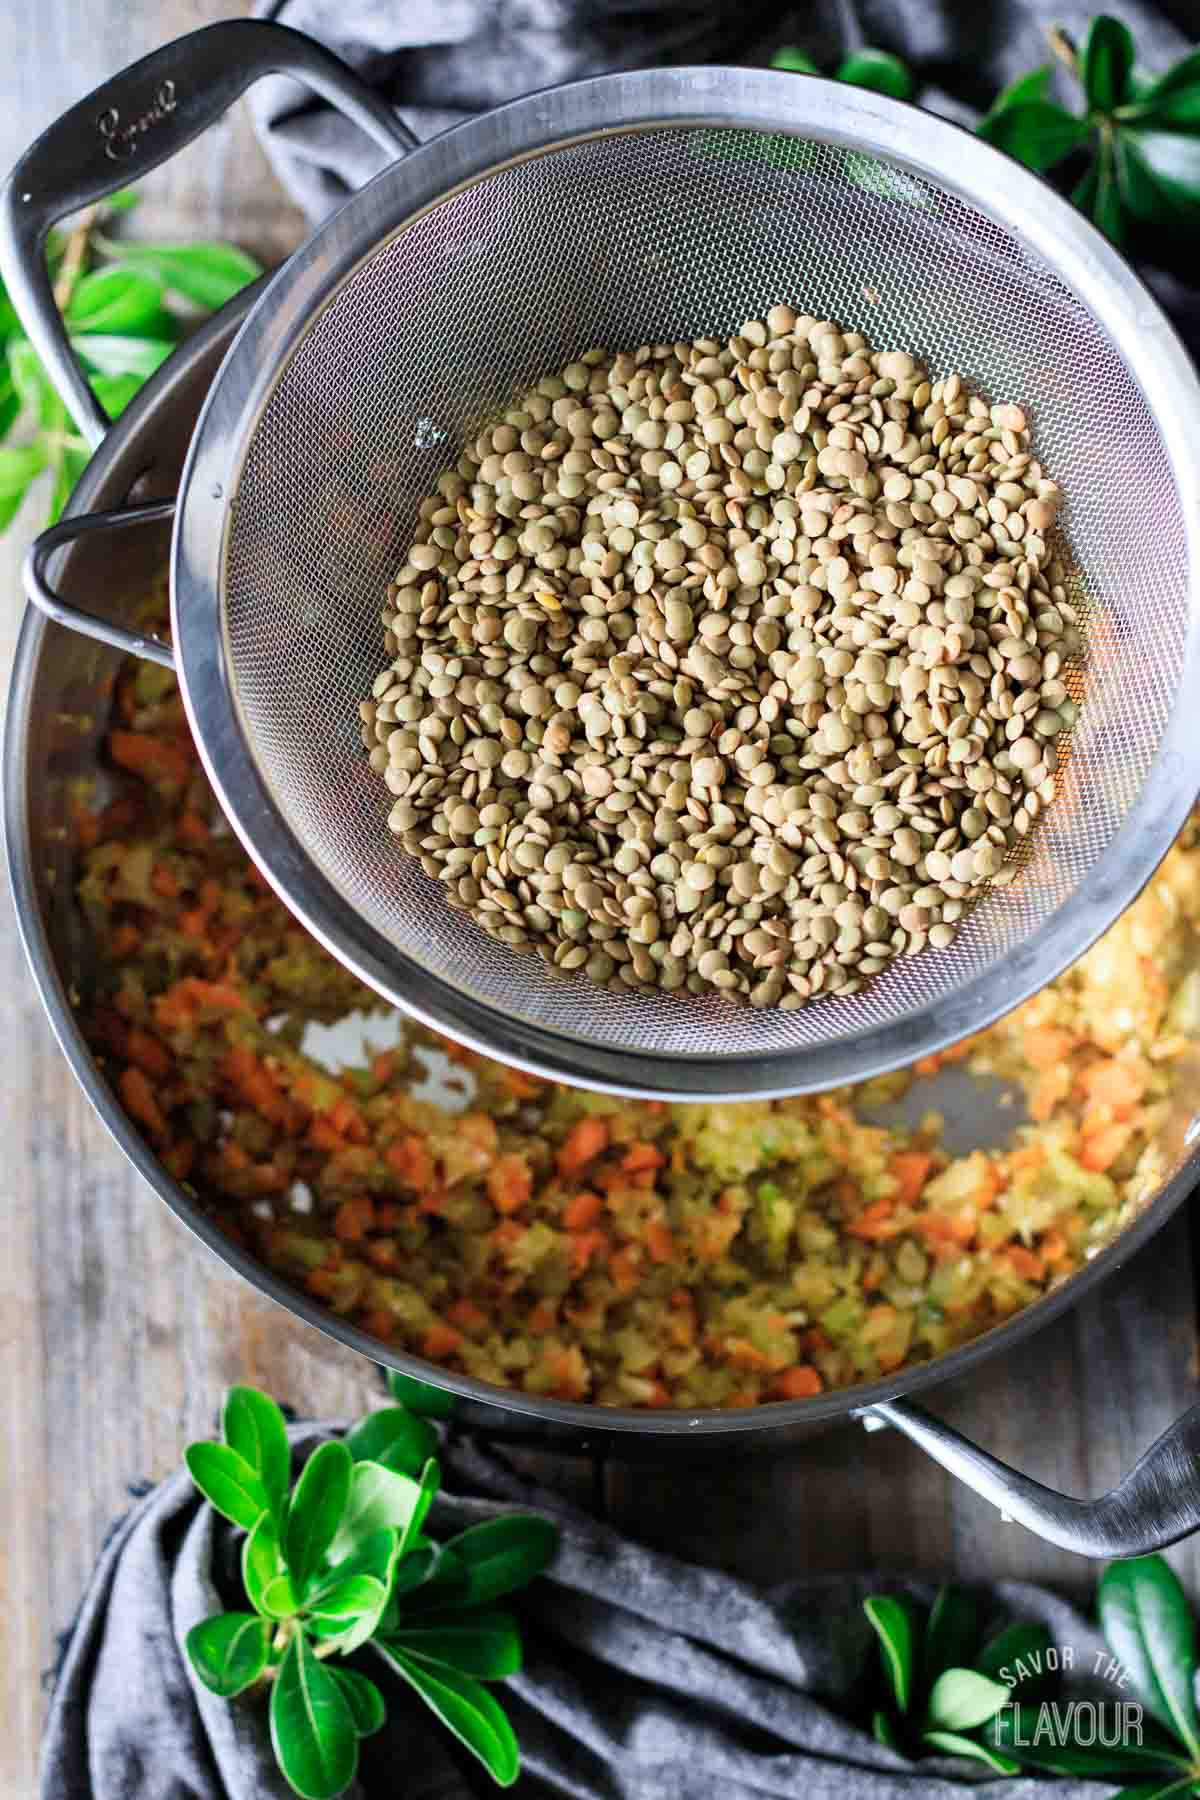 adding rinsed lentils to the pot of sauteed veggies